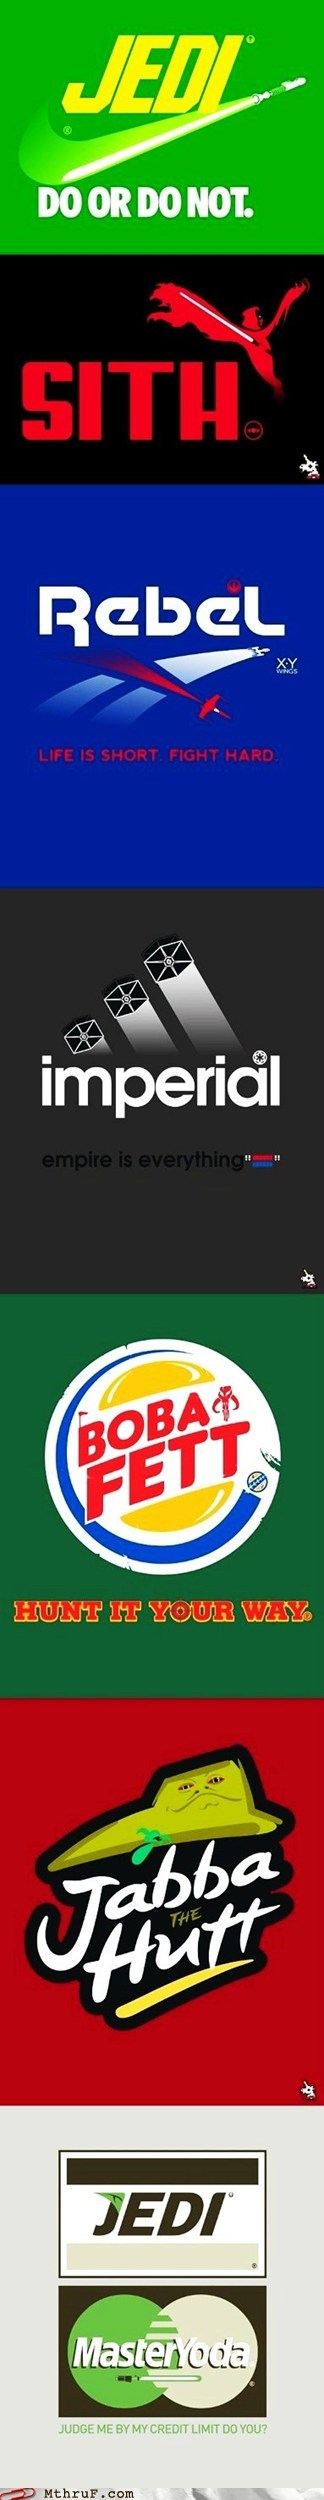 boba fett,empire,imperial,Jedi,may 4th,may the 4th be with you,rebel,sith,star wars,star wars brands,yoda